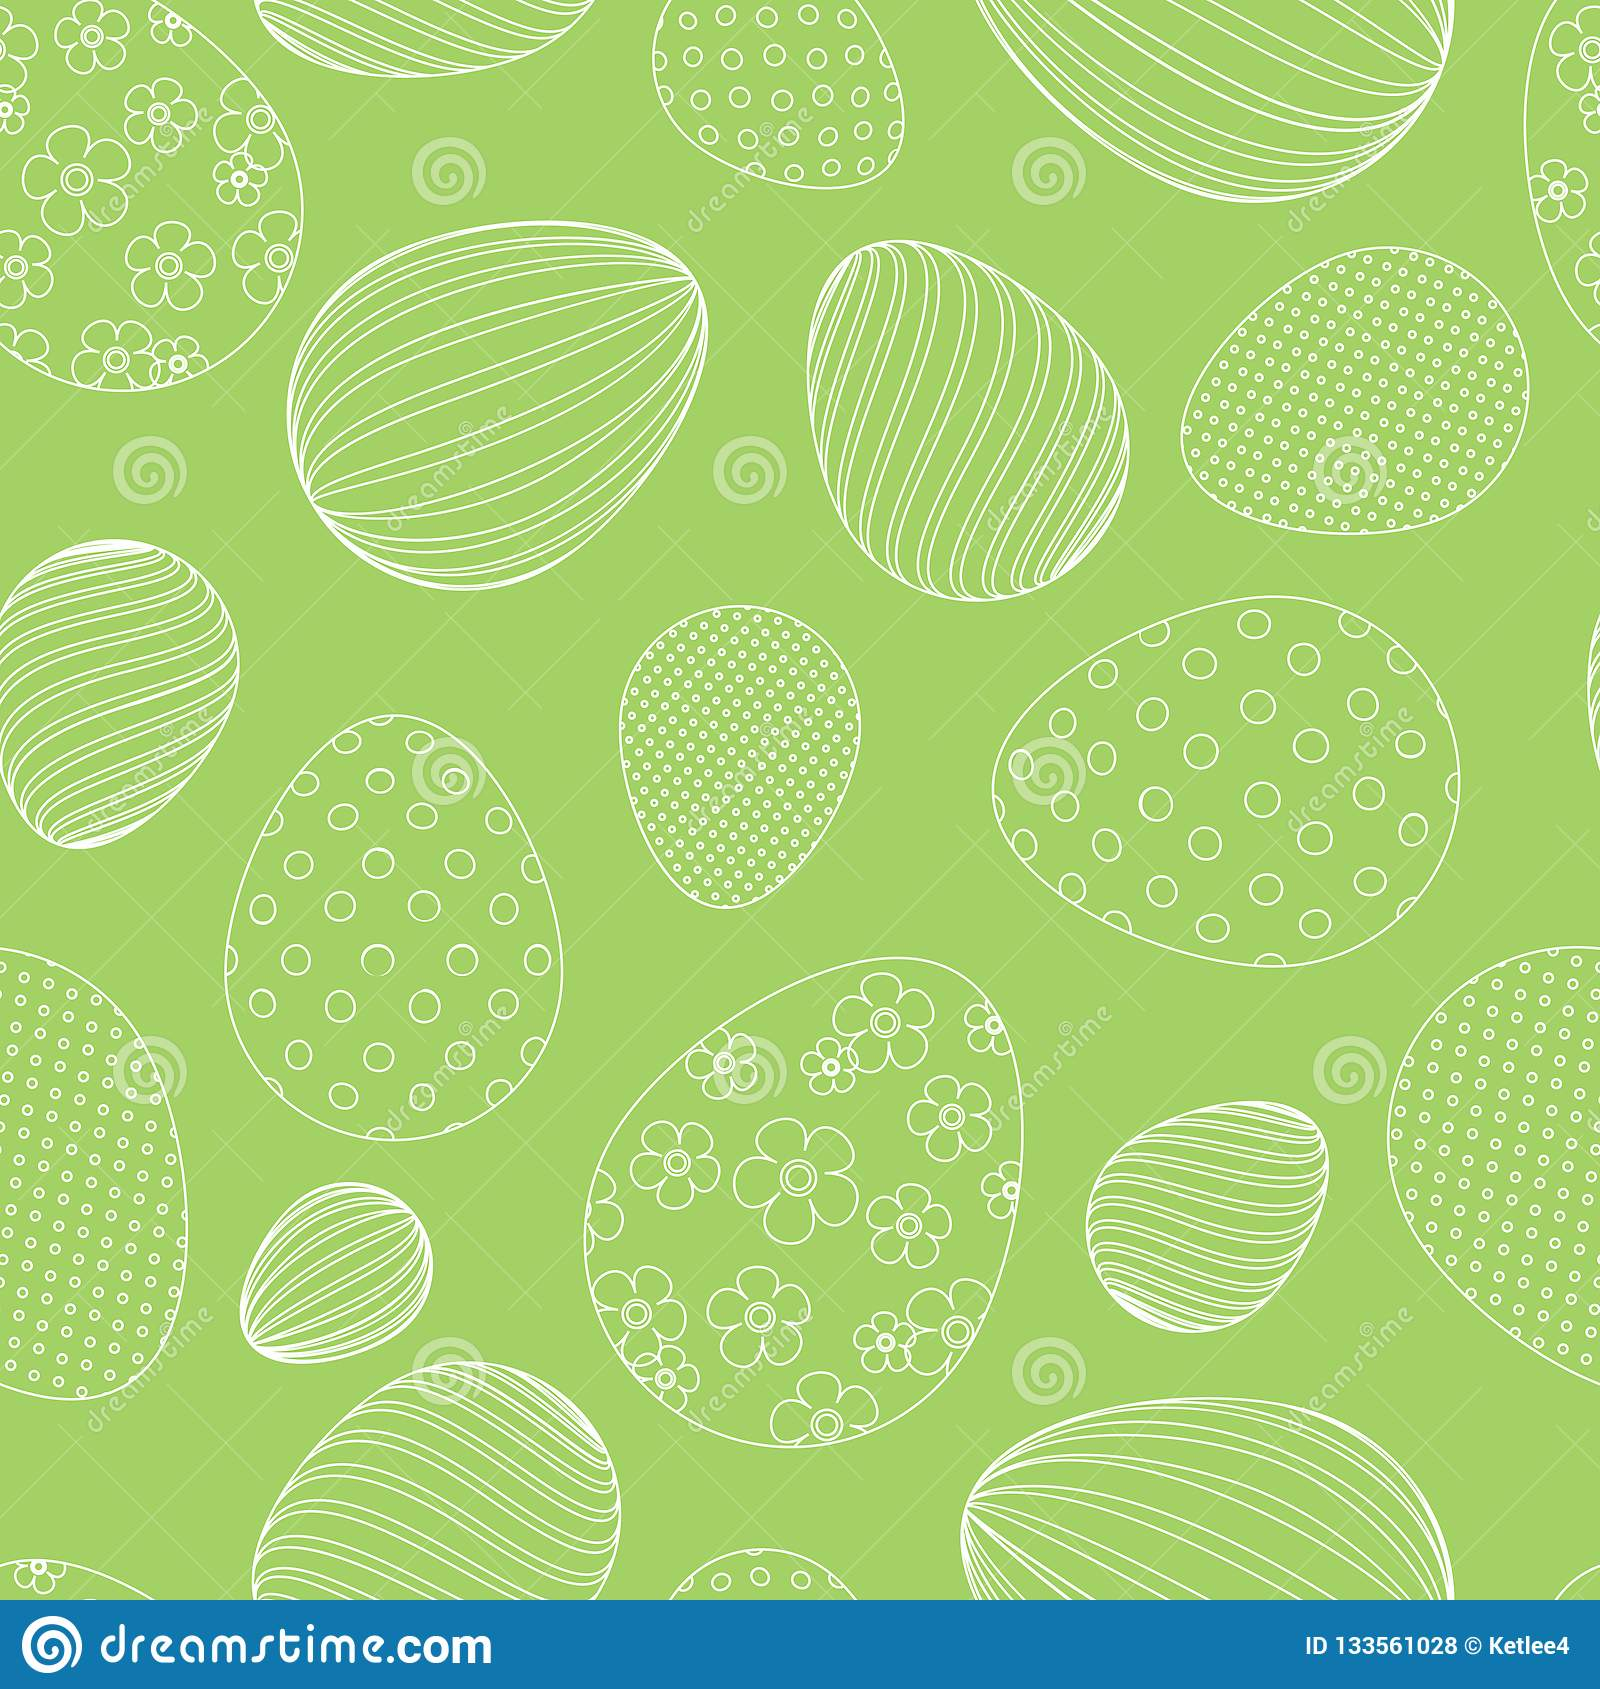 Seamless pattern from white easter eggs on a green background Decorative festive background for design of tags cards banners